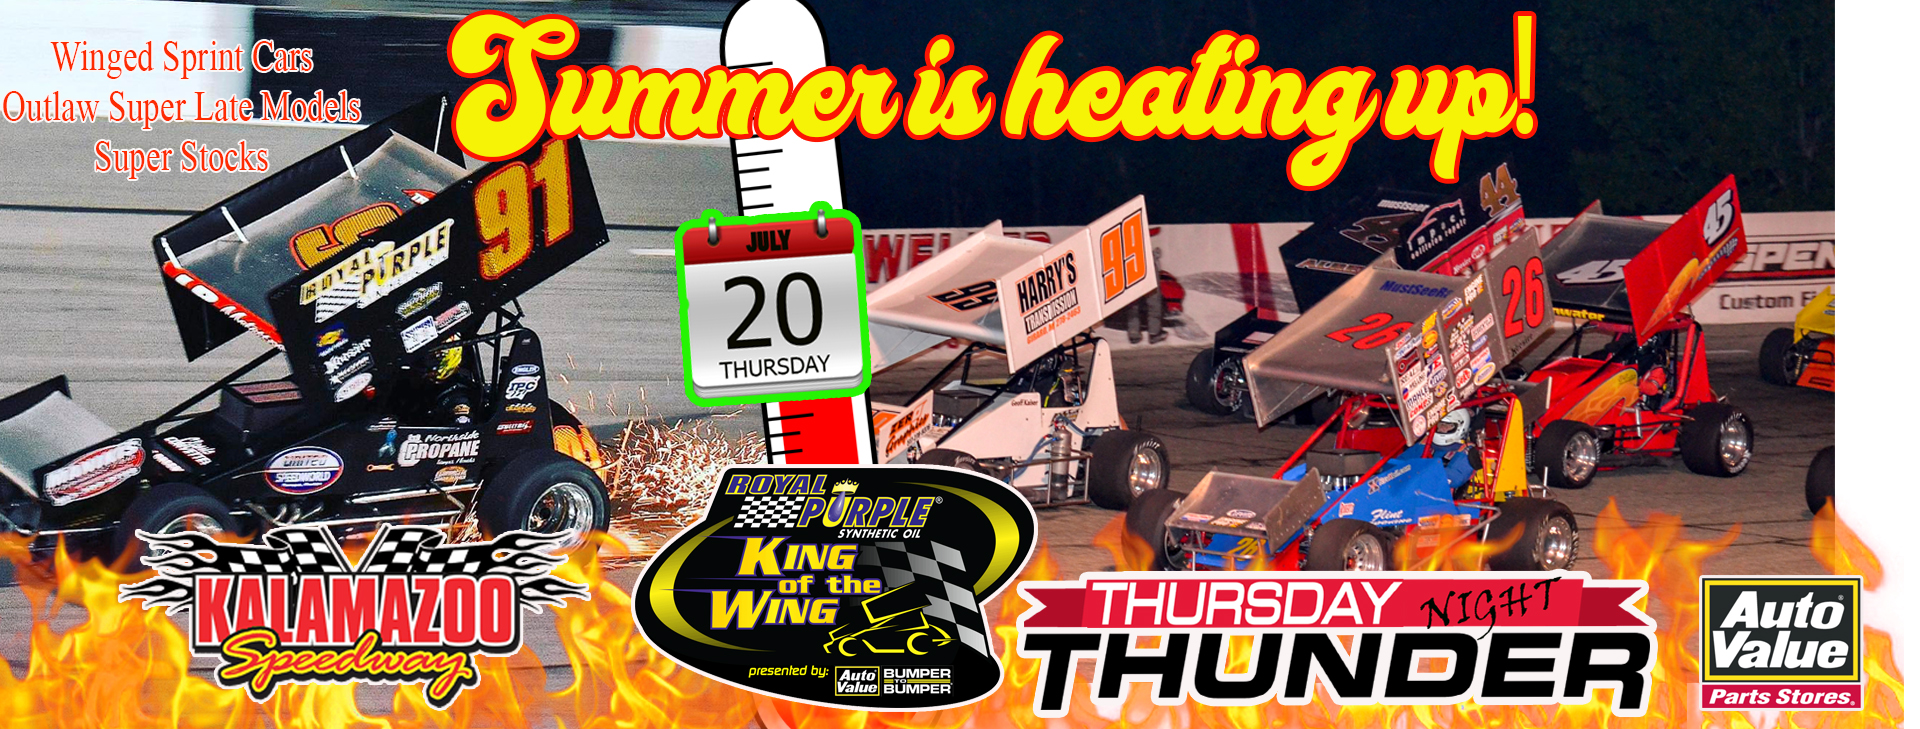 King of the Wing Winged Super Sprint Spectacular with NASCAR Outlaw Super Late Models & Super Stocks